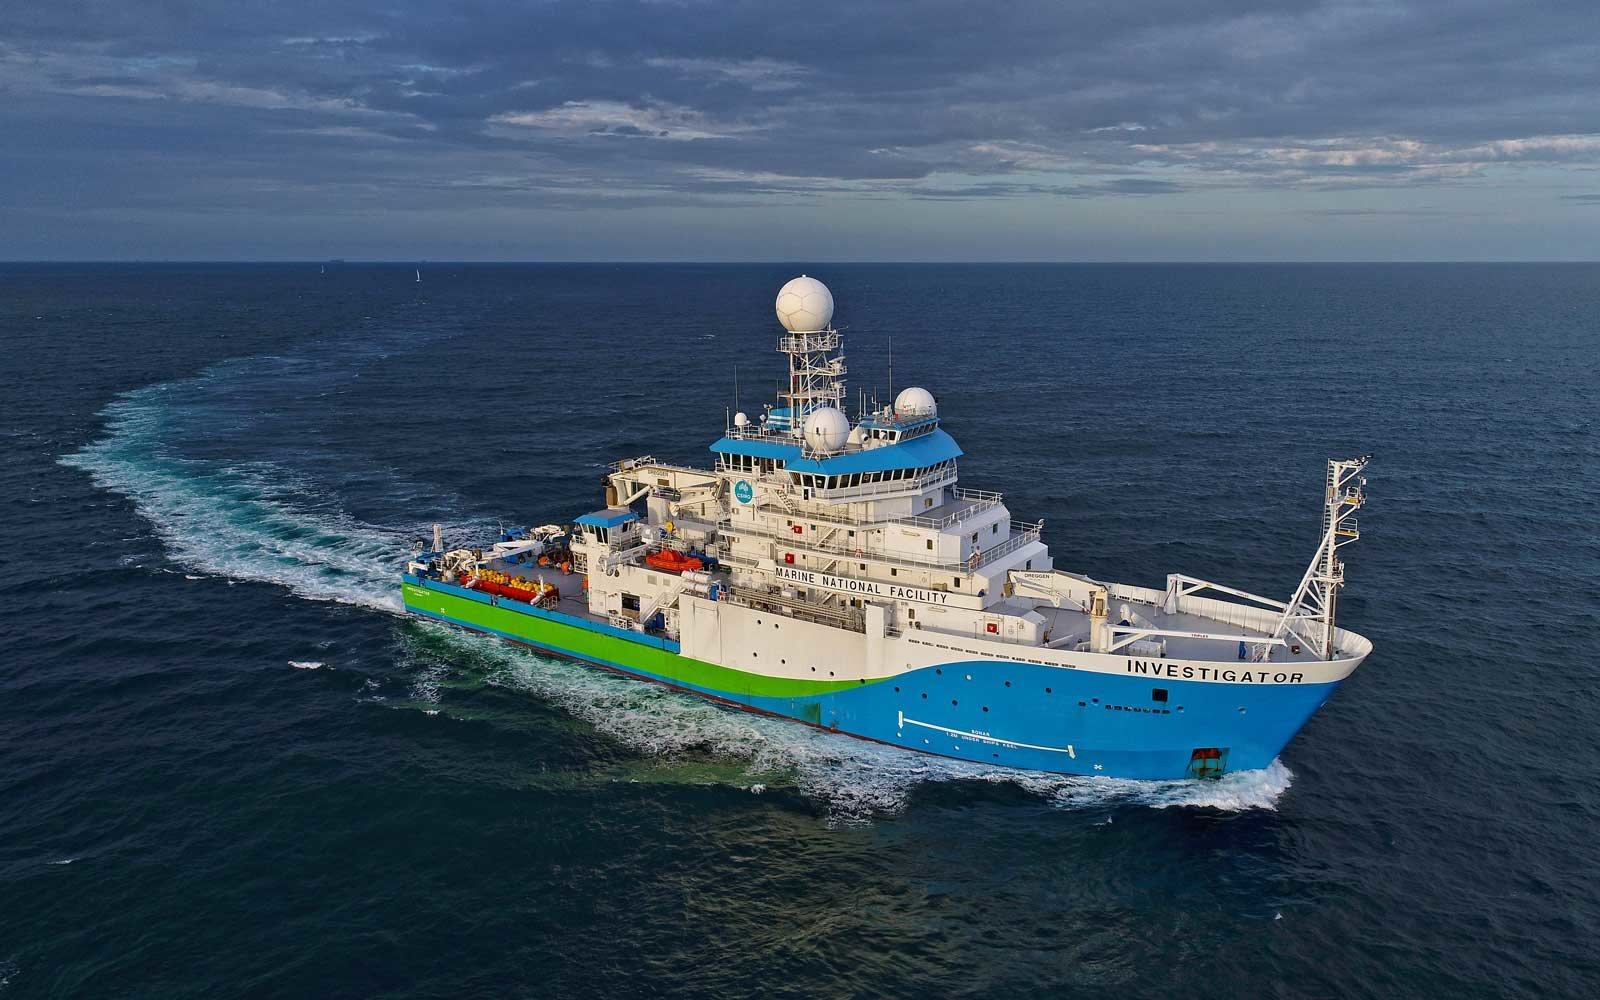 A mapping investigation through the CSIRO research vessel has revealed an underwater world of volcanoes.